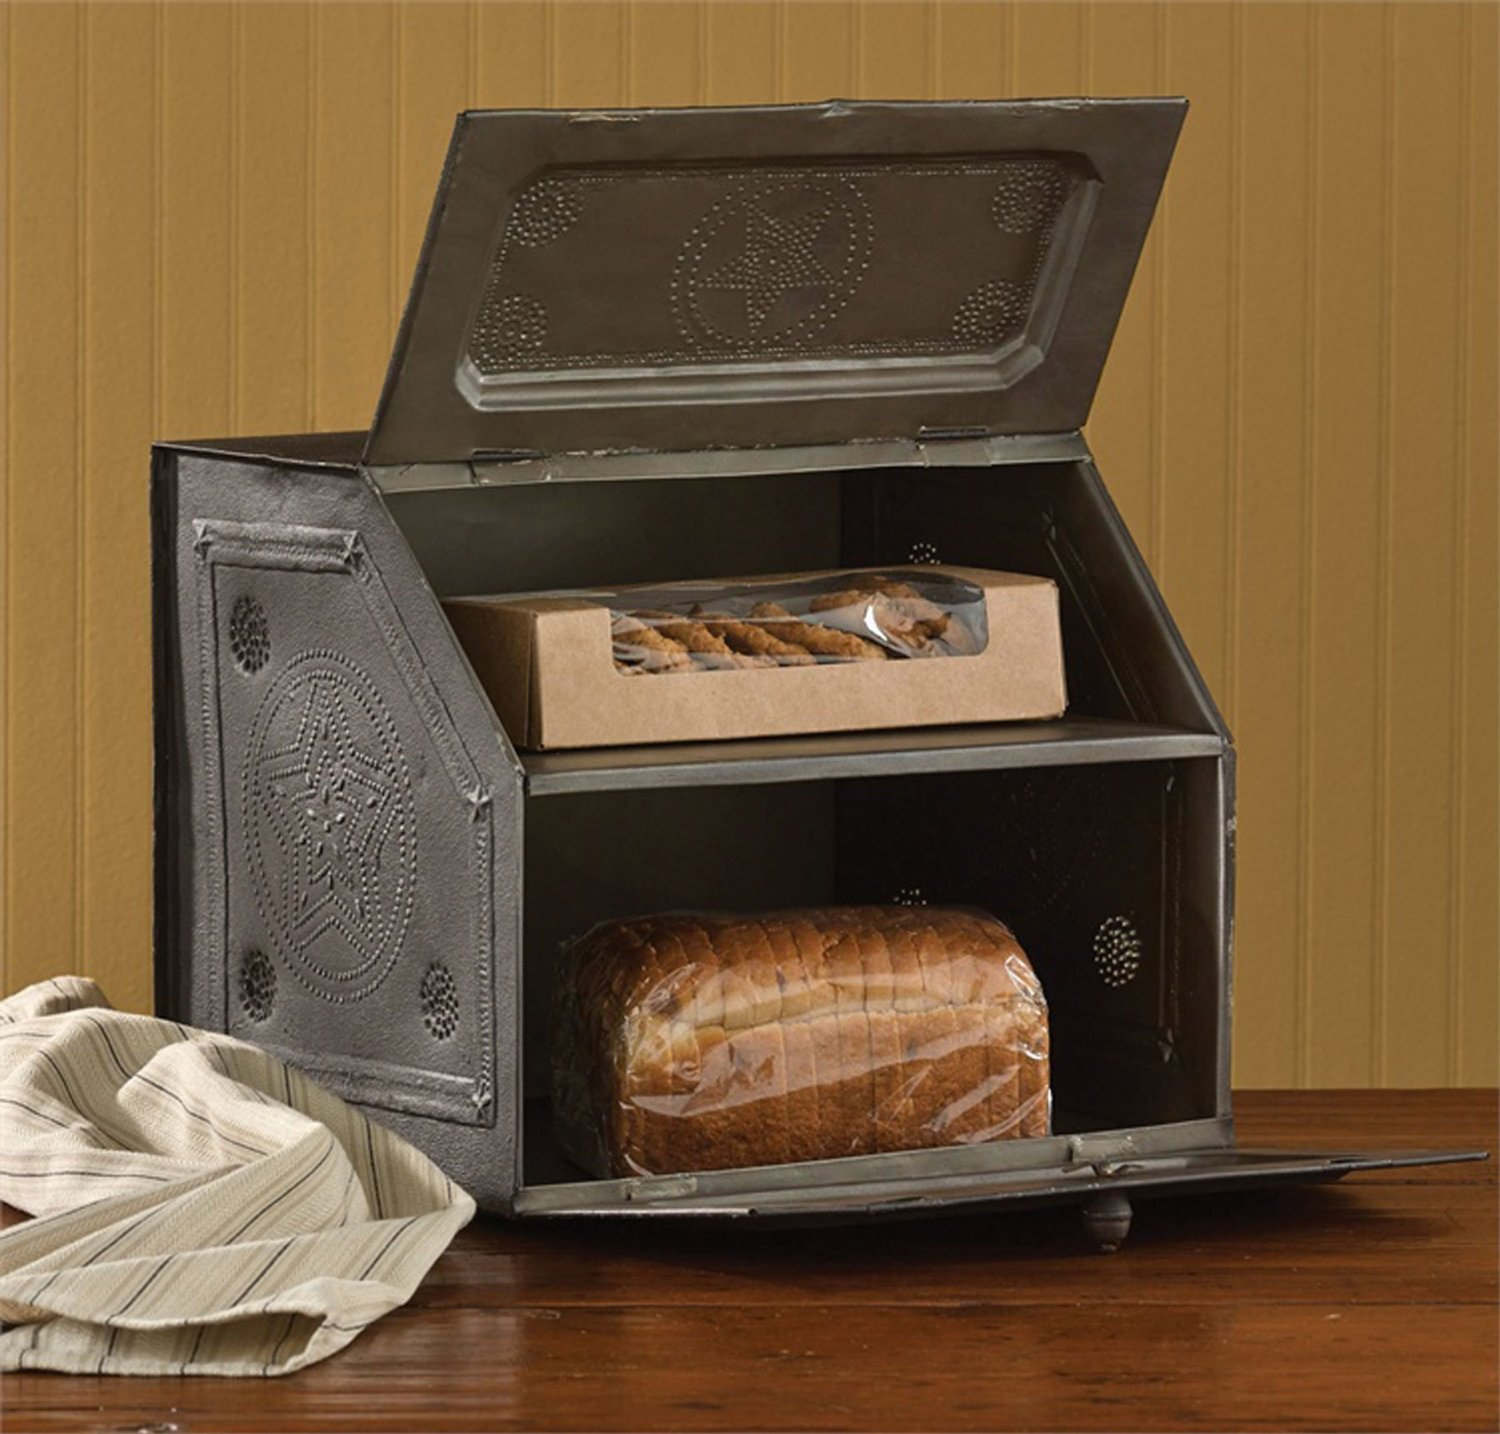 This antique tin breadbox, will give your kitchen a rustic feel. It is complete with two shelves, which gives you the option to use it as an organizer too.